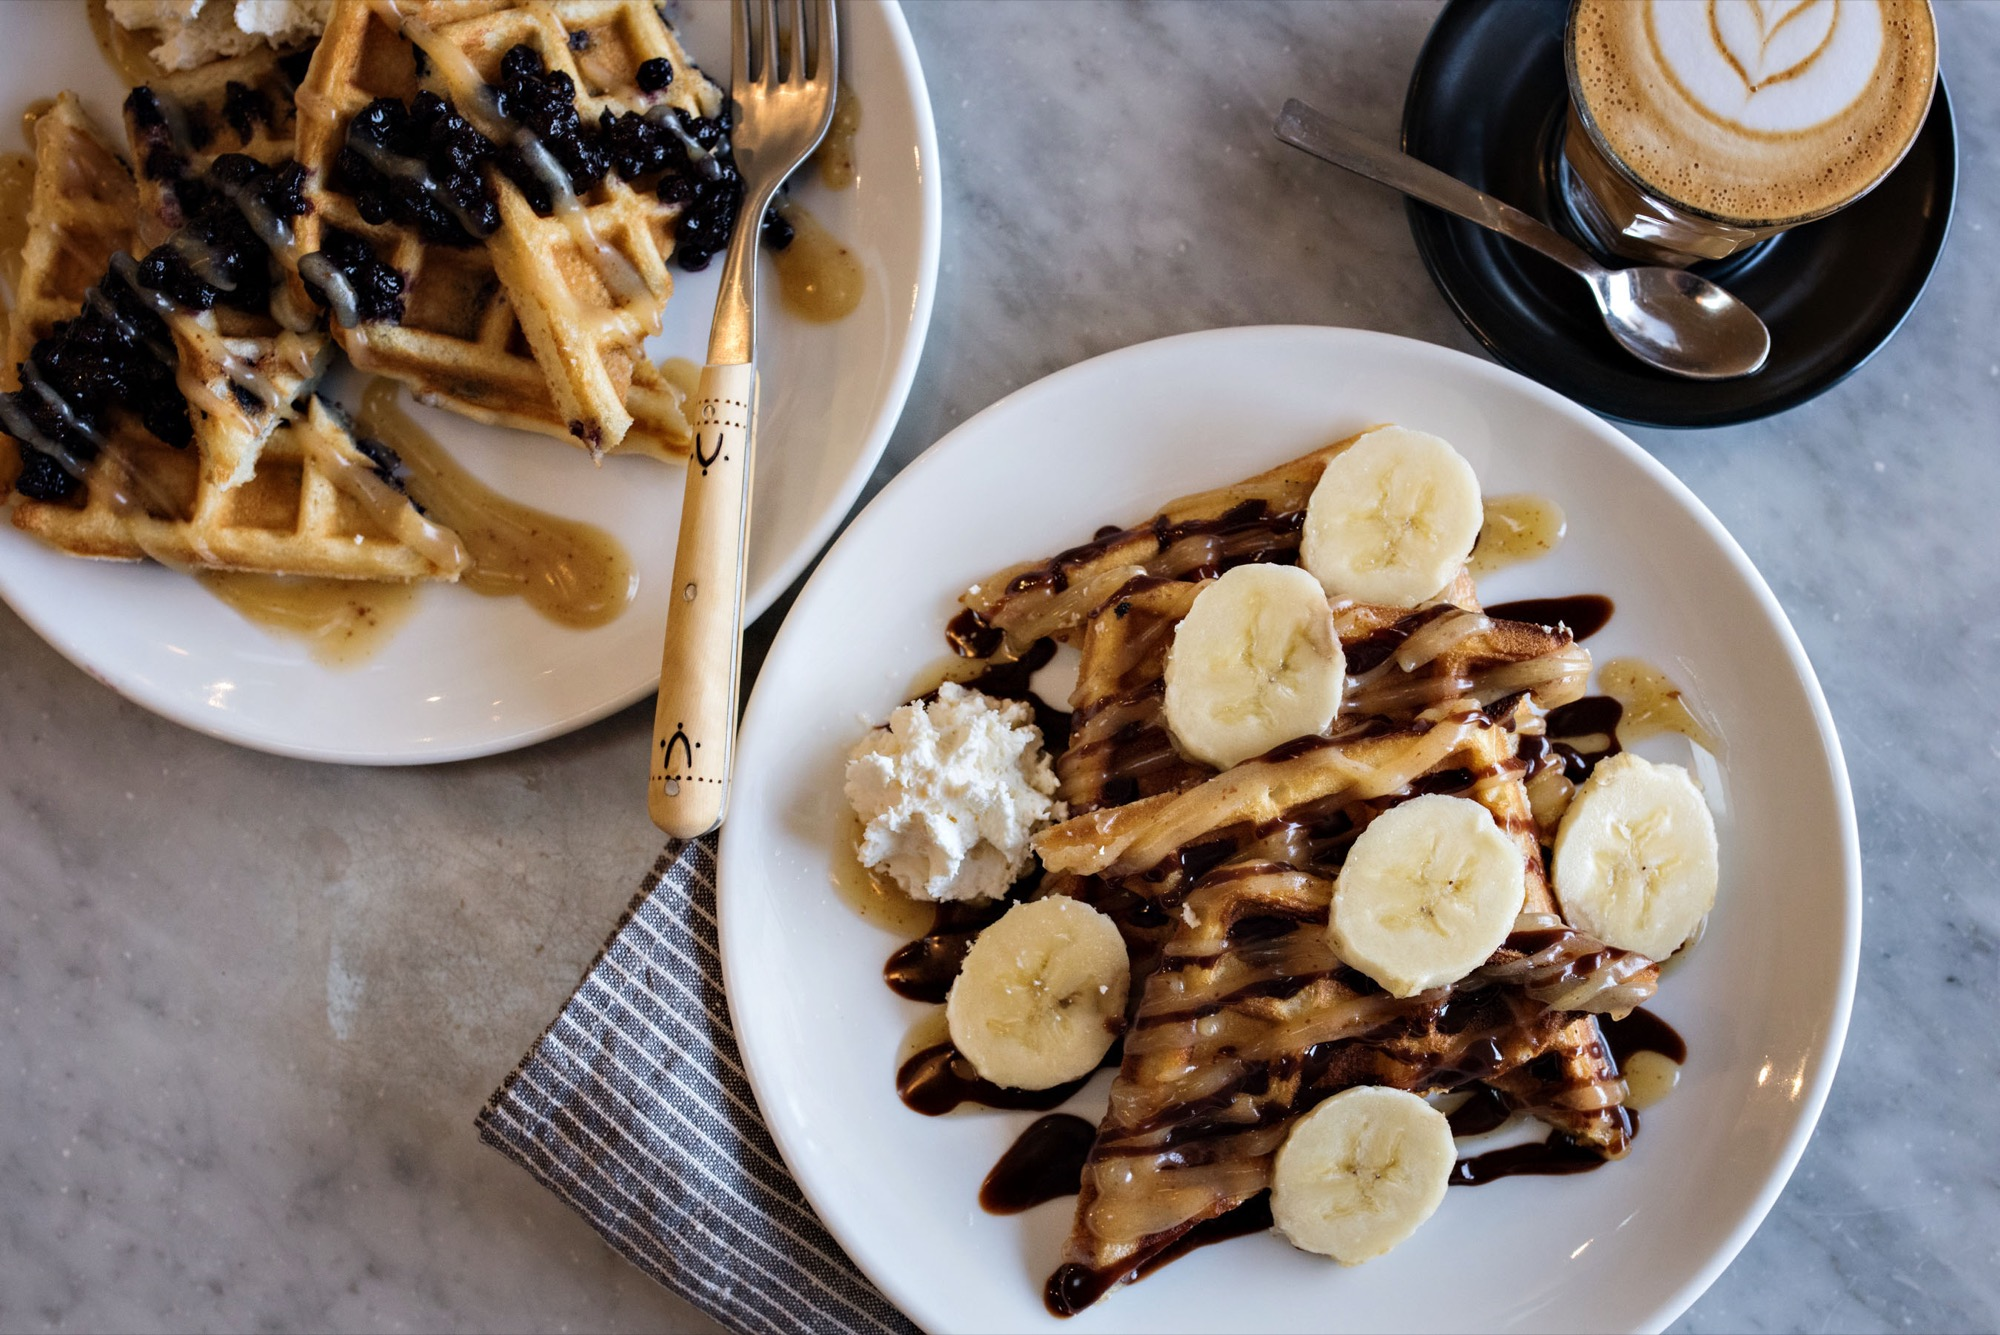 L: Blueberry Waffle with maple brown butter / R: Nutella Banana Waffle with maple brown butter / Photo by D'Ann McCormick Boal